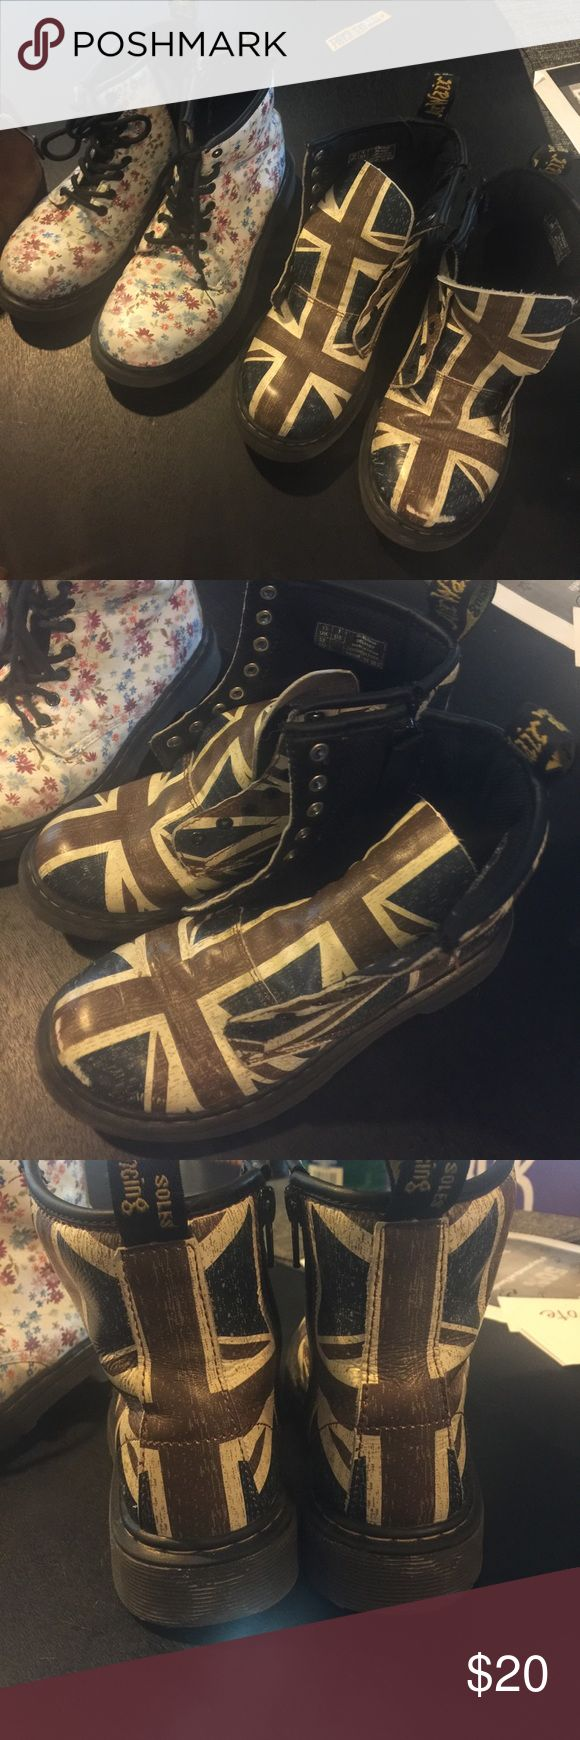 🔥sale🔥Dr Martens Kids size 1 used but in good condition sold separate. Price is for each or both for $25 Dr. Martens Shoes Rain & Snow Boots